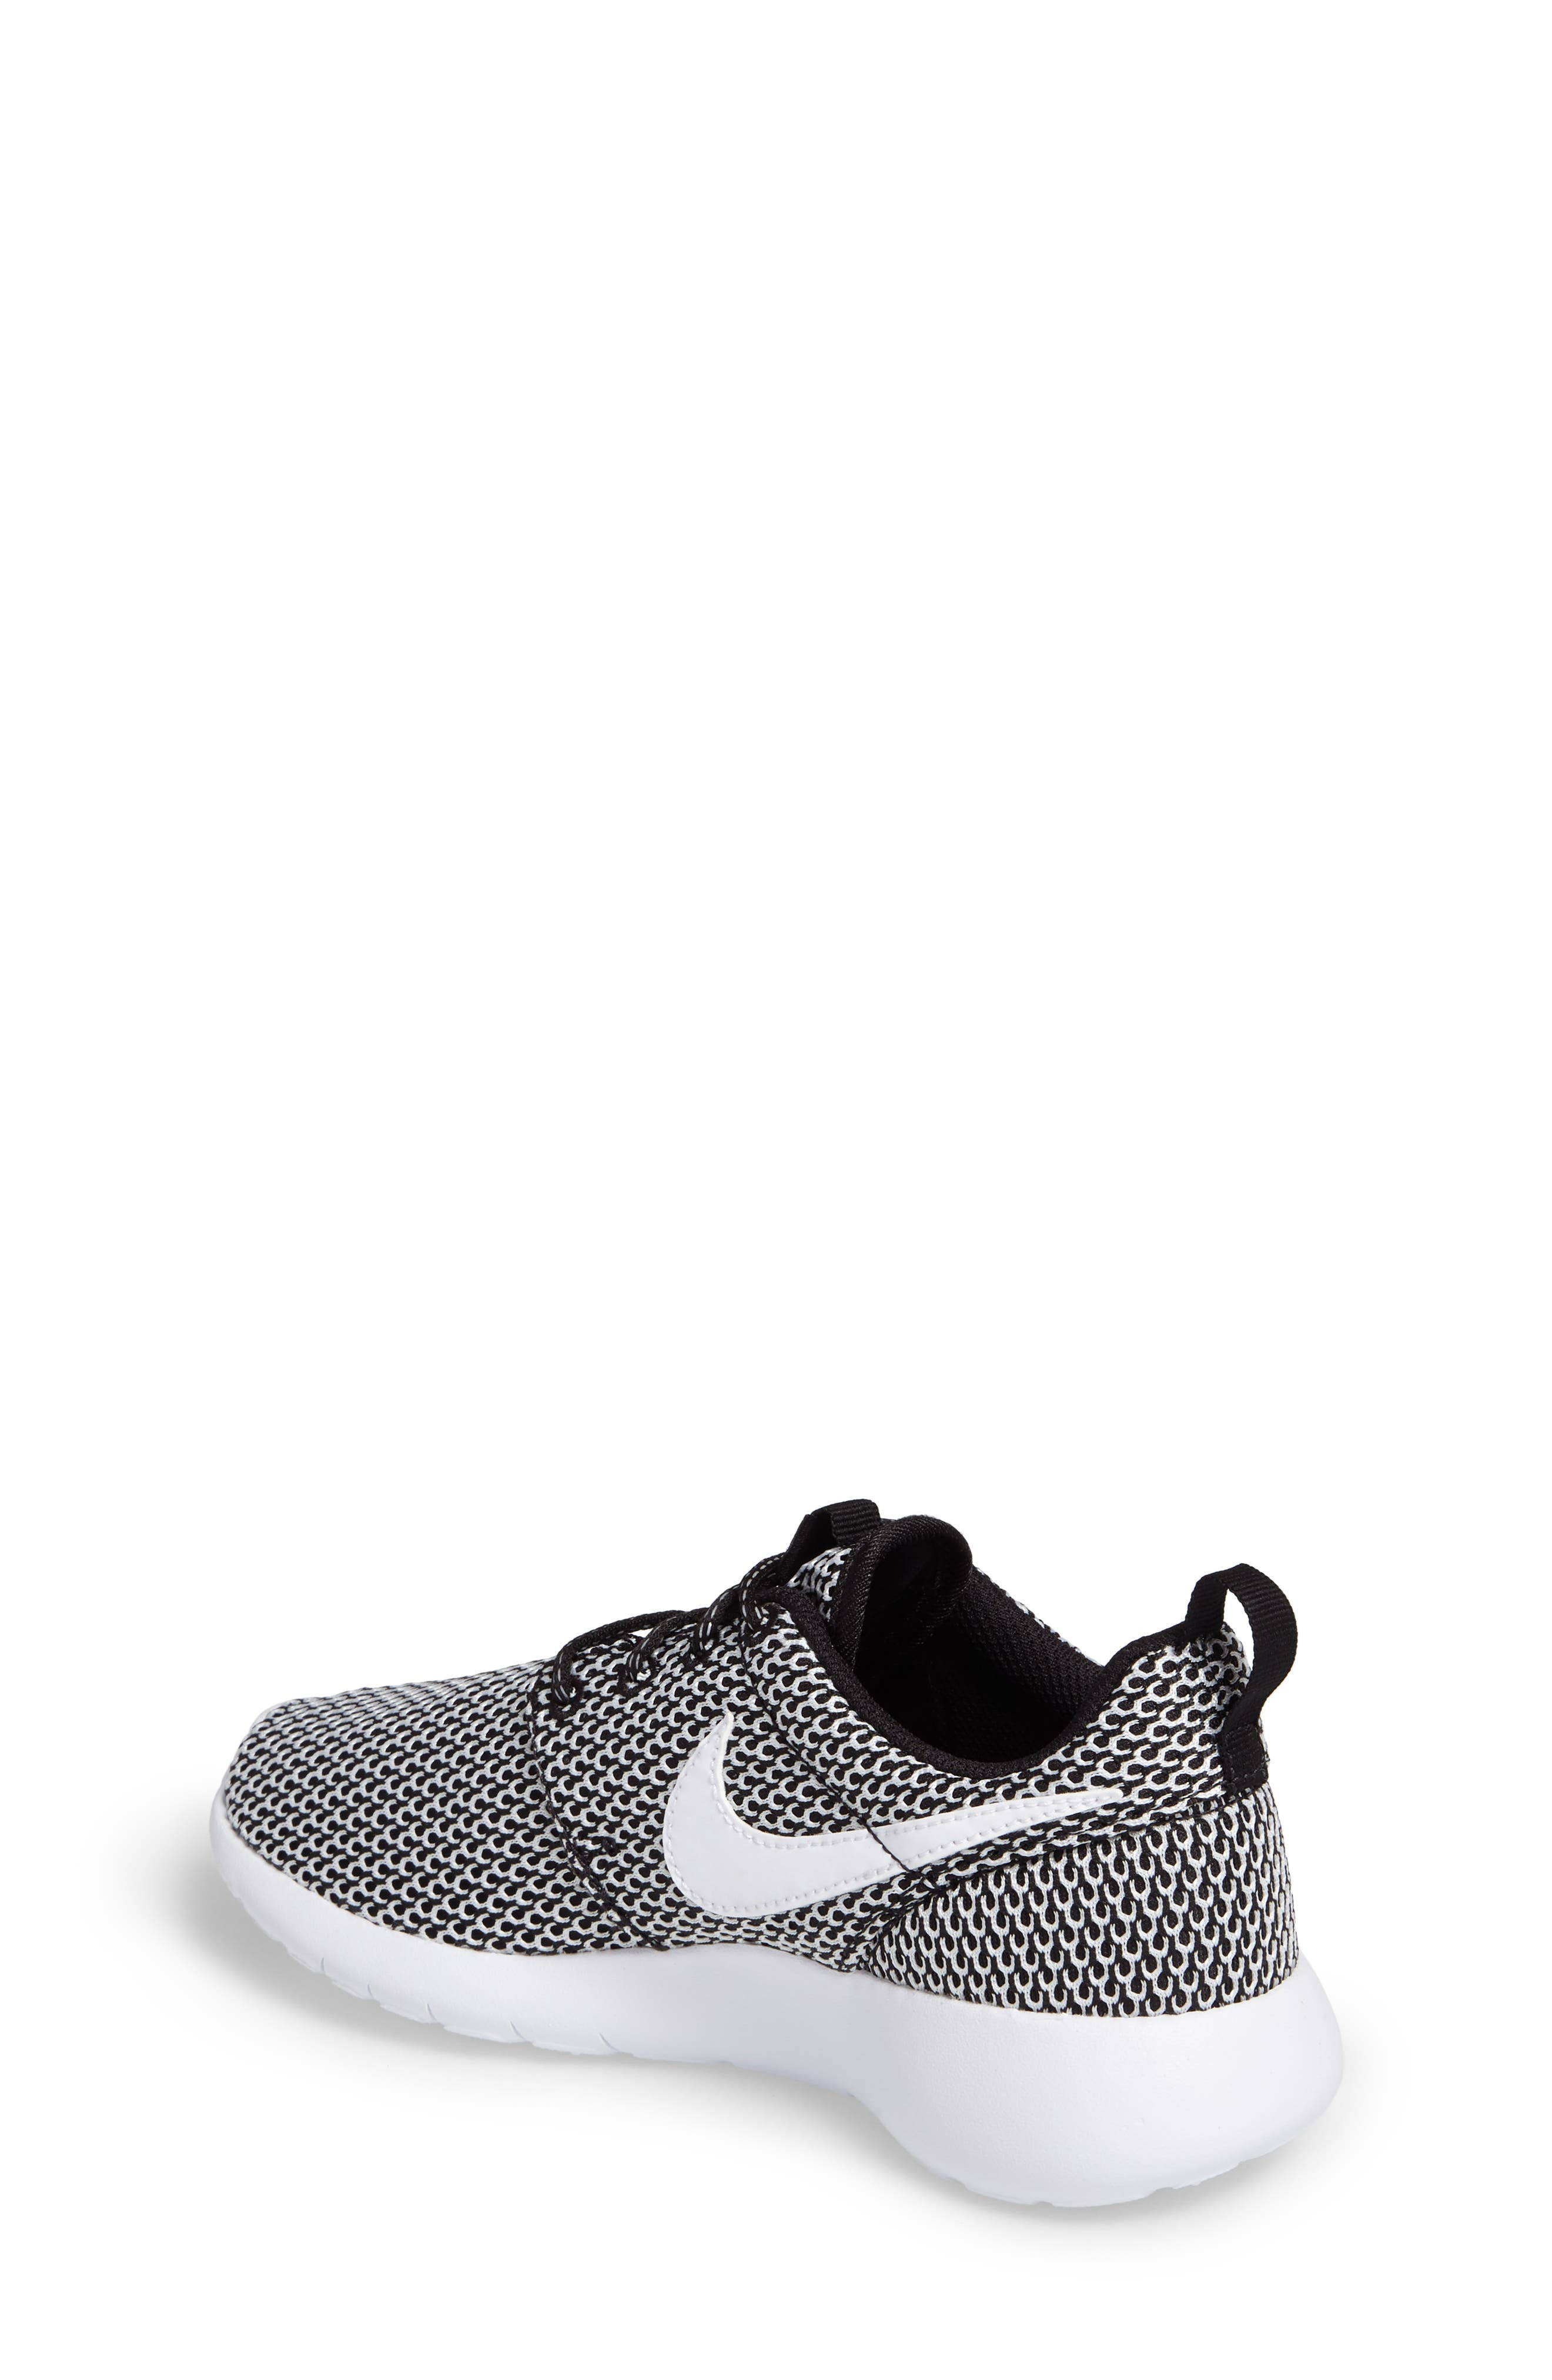 'Roshe Run' Sneaker,                             Alternate thumbnail 70, color,